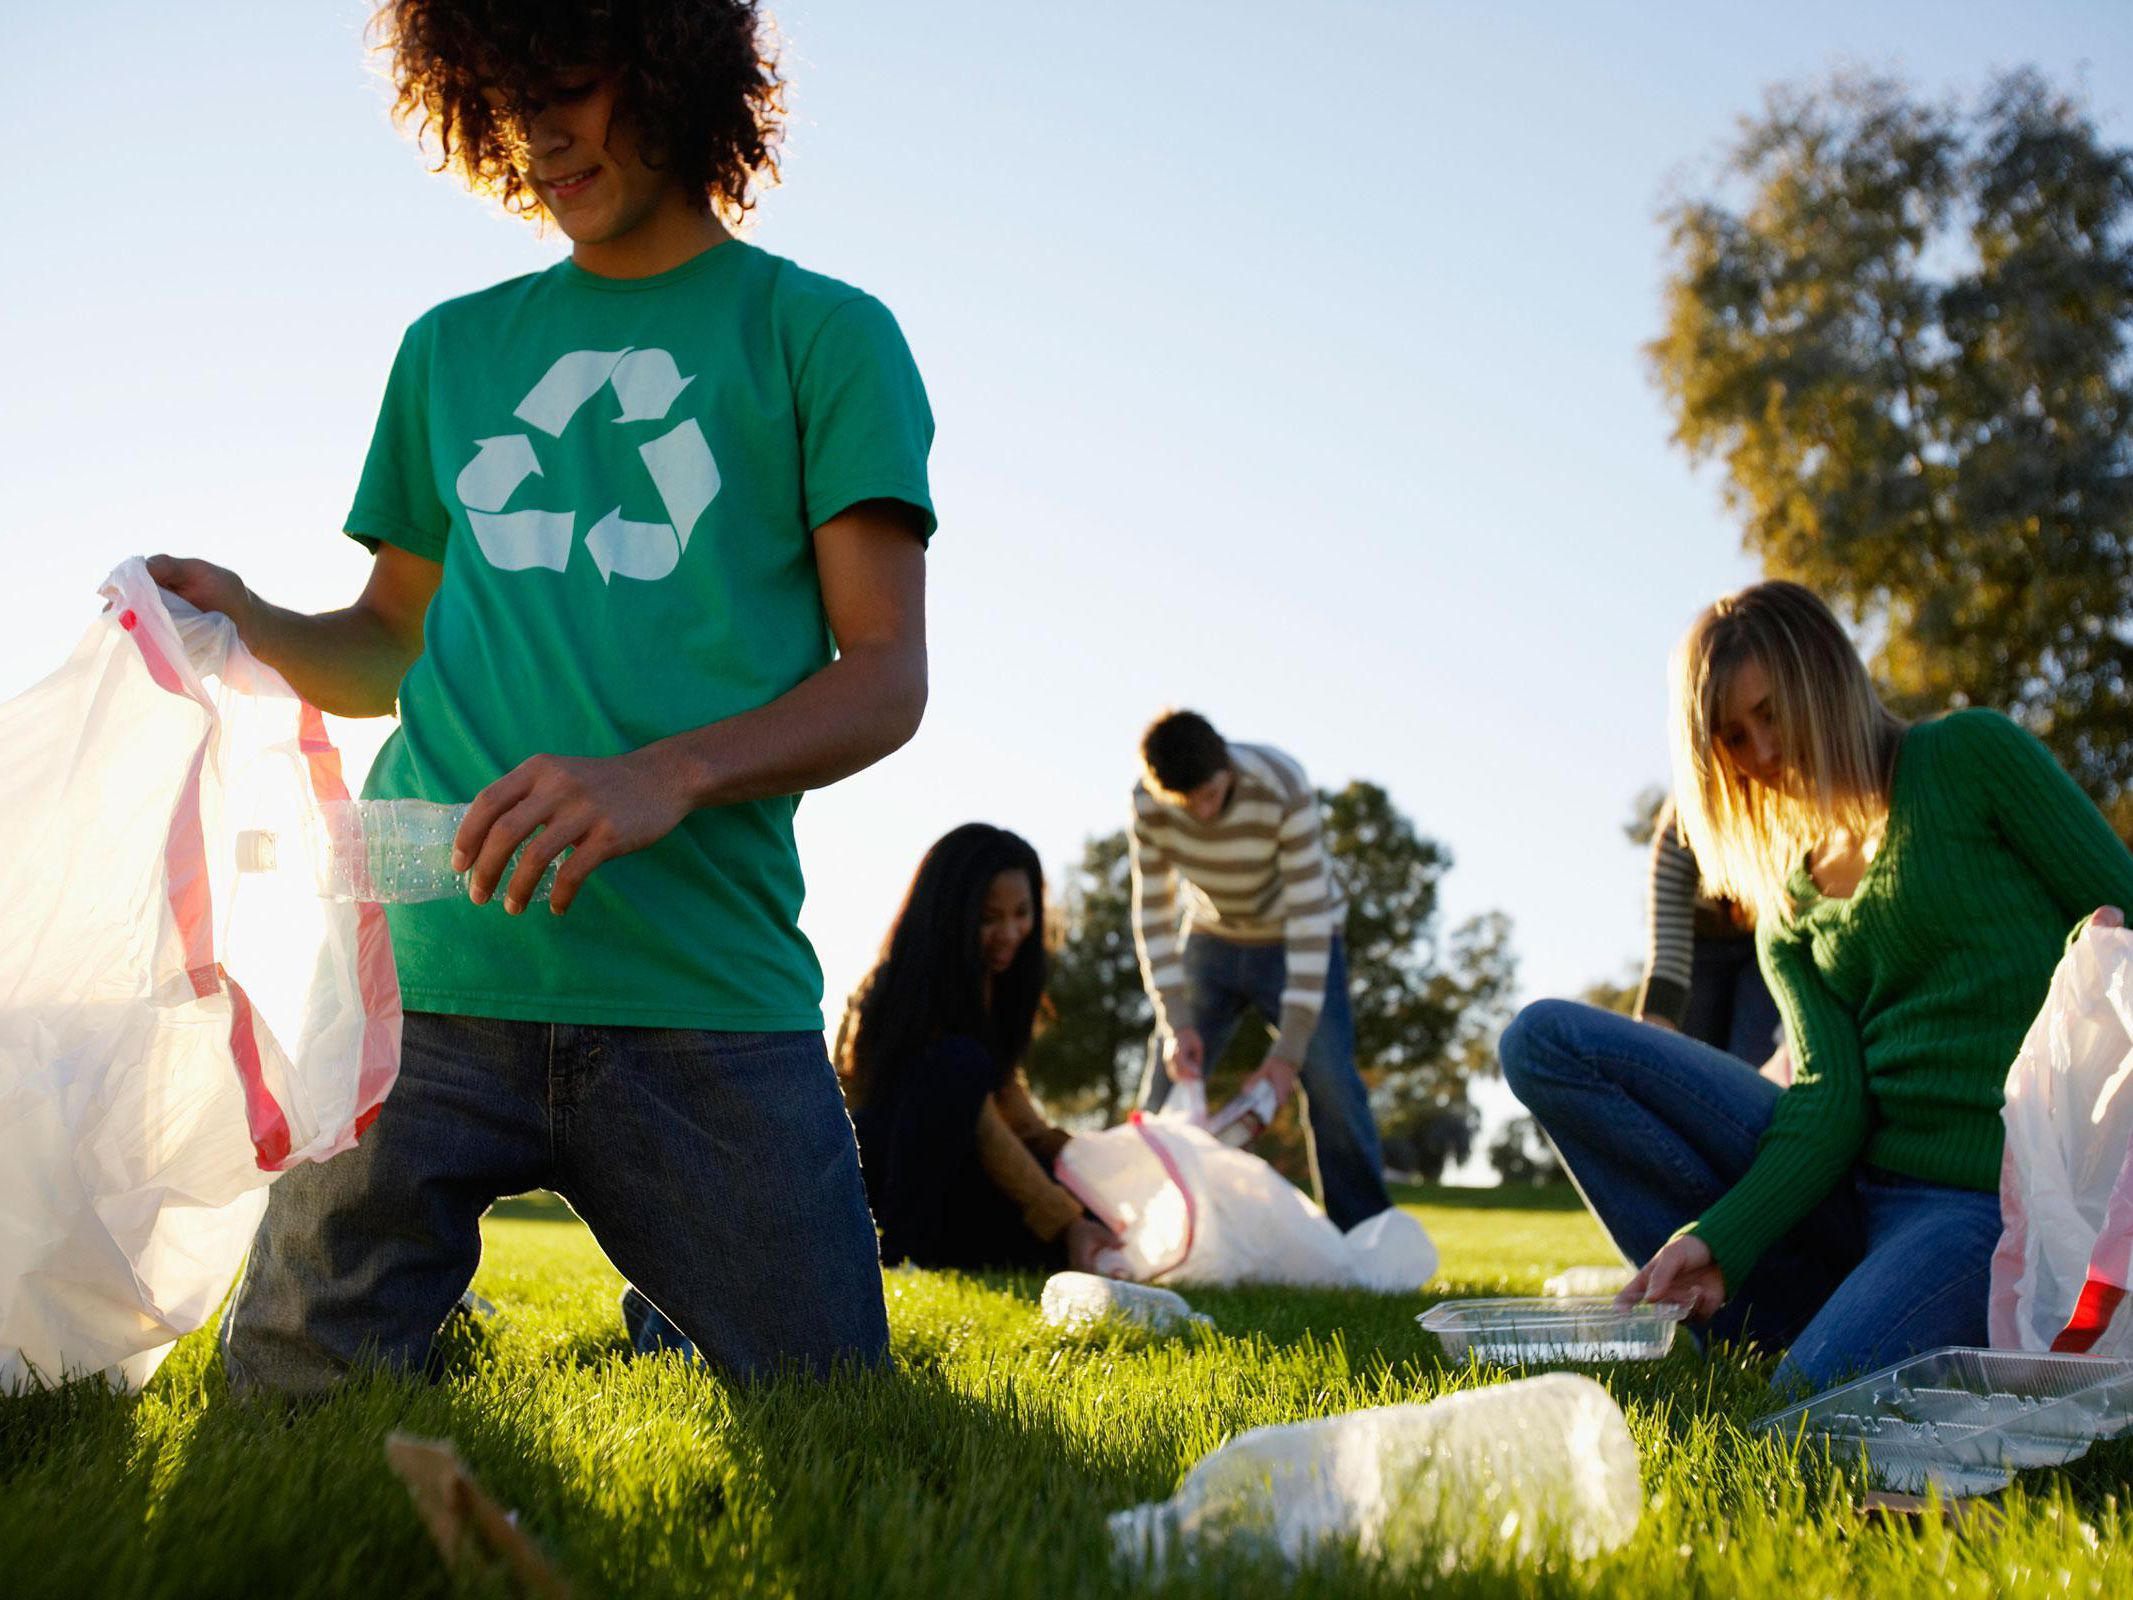 Learn About the 3 Rs: Reduce, Reuse, and Recycle